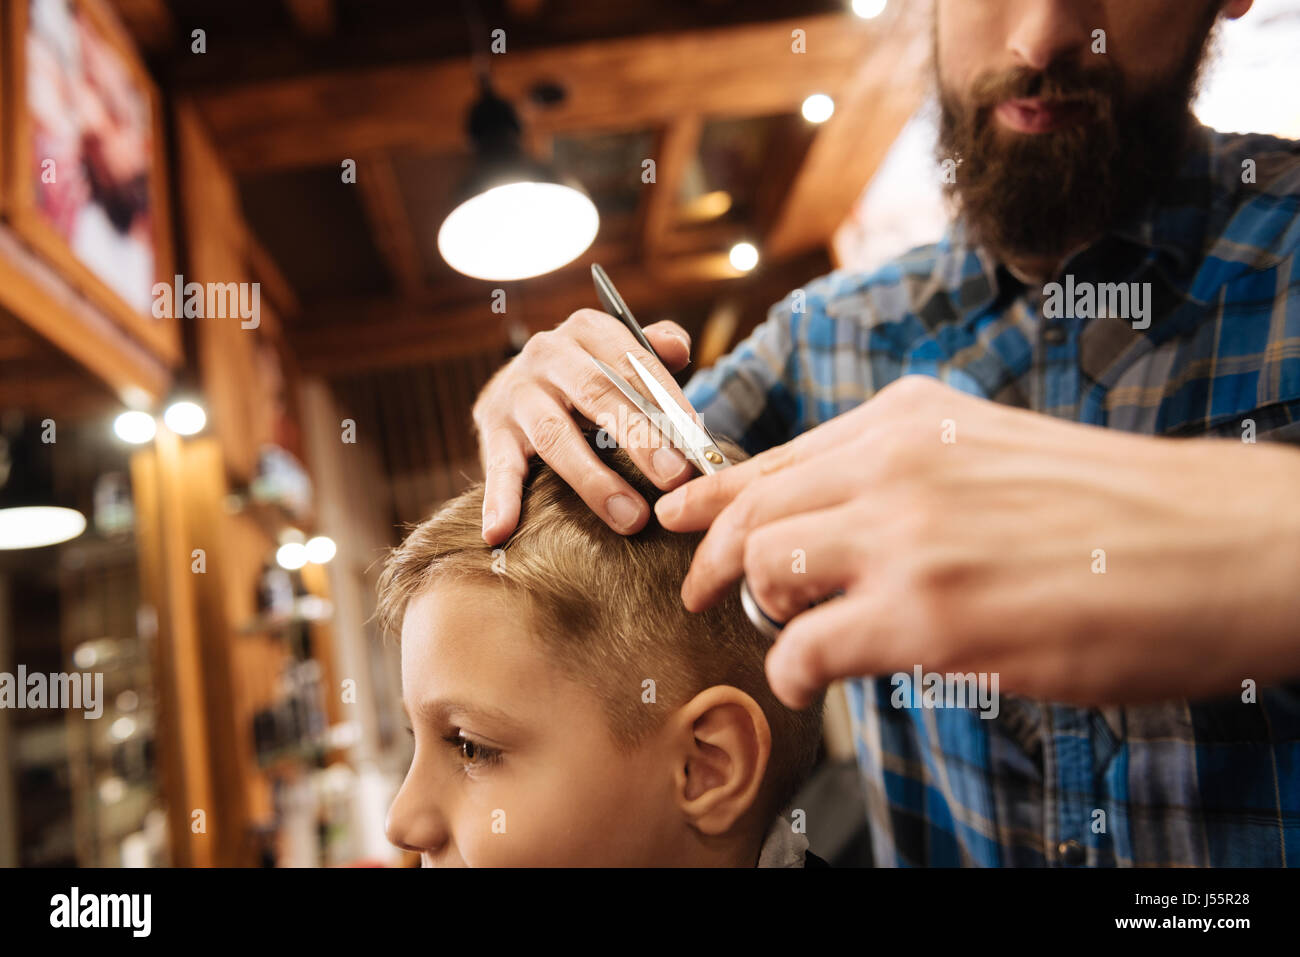 Good looking young barber using scissors - Stock Image